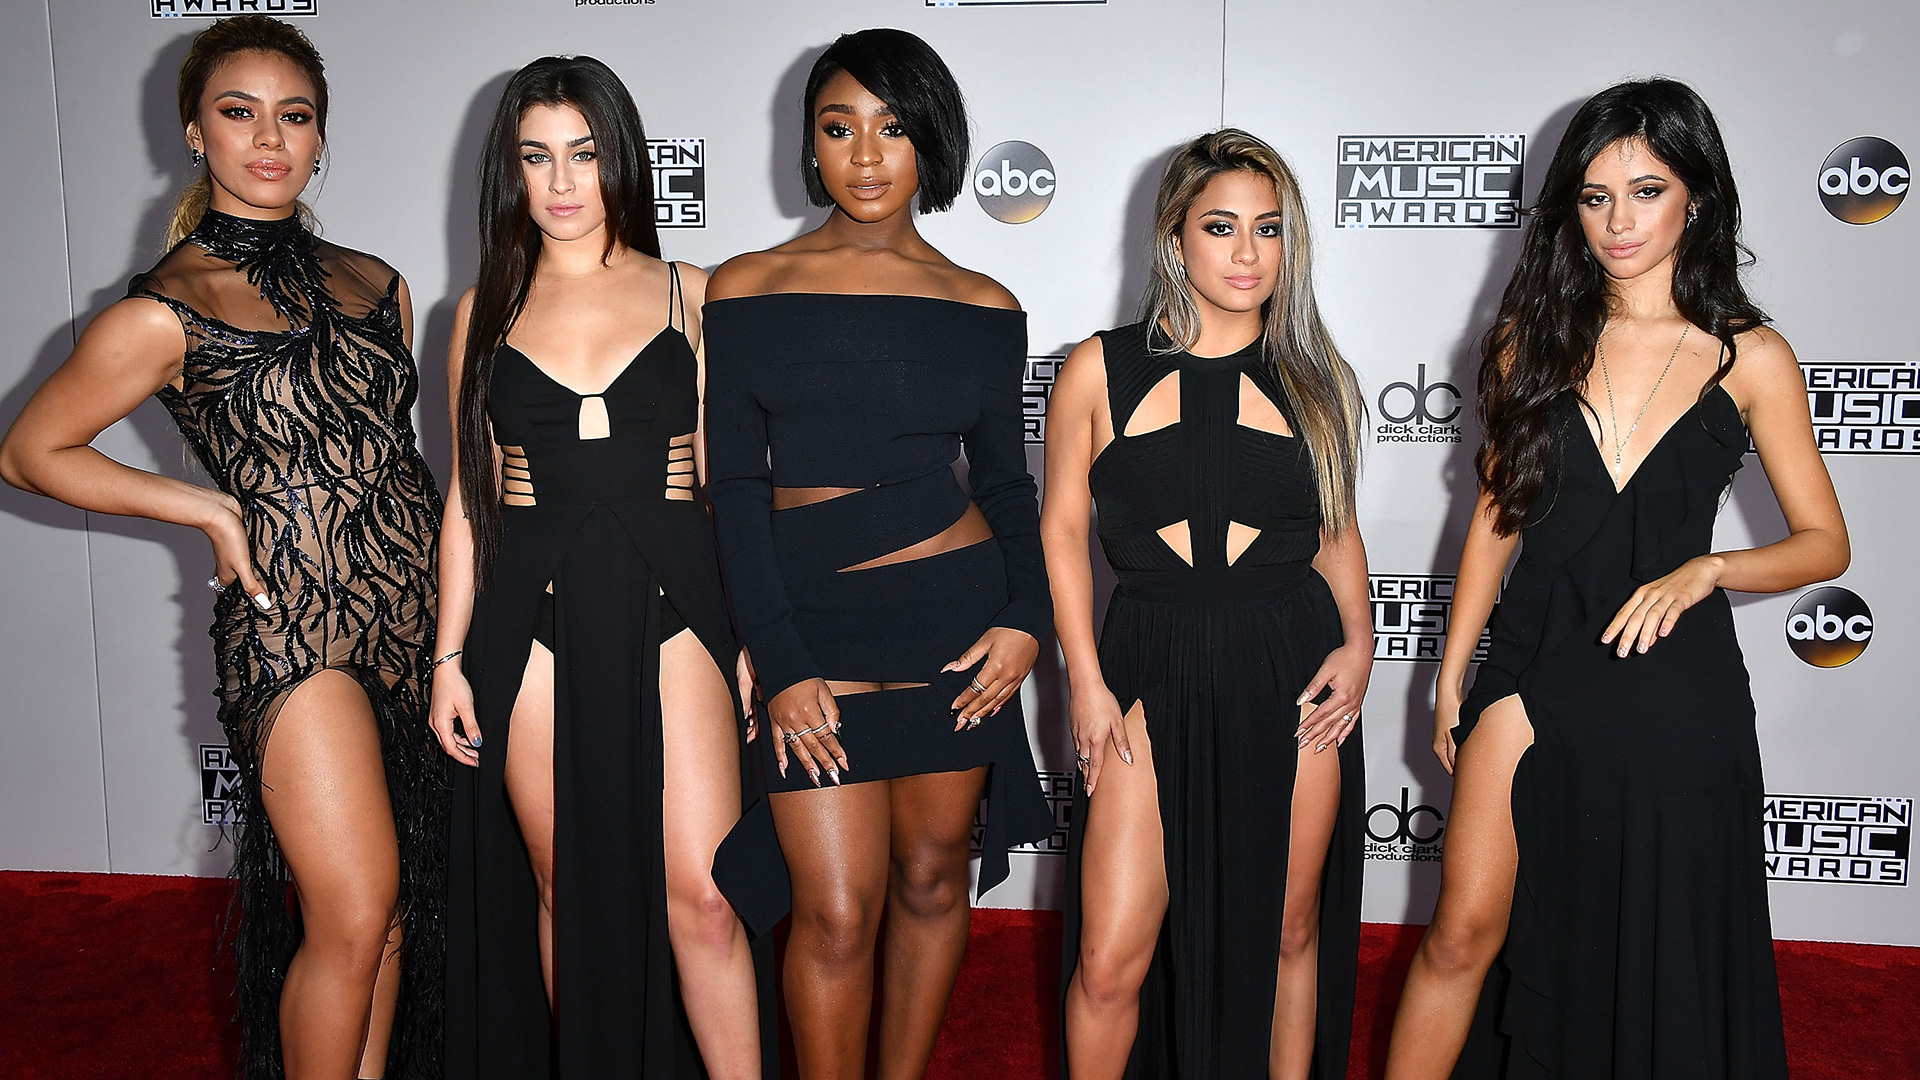 This Fifth Harmony Member Came Out in an Inspiring Way